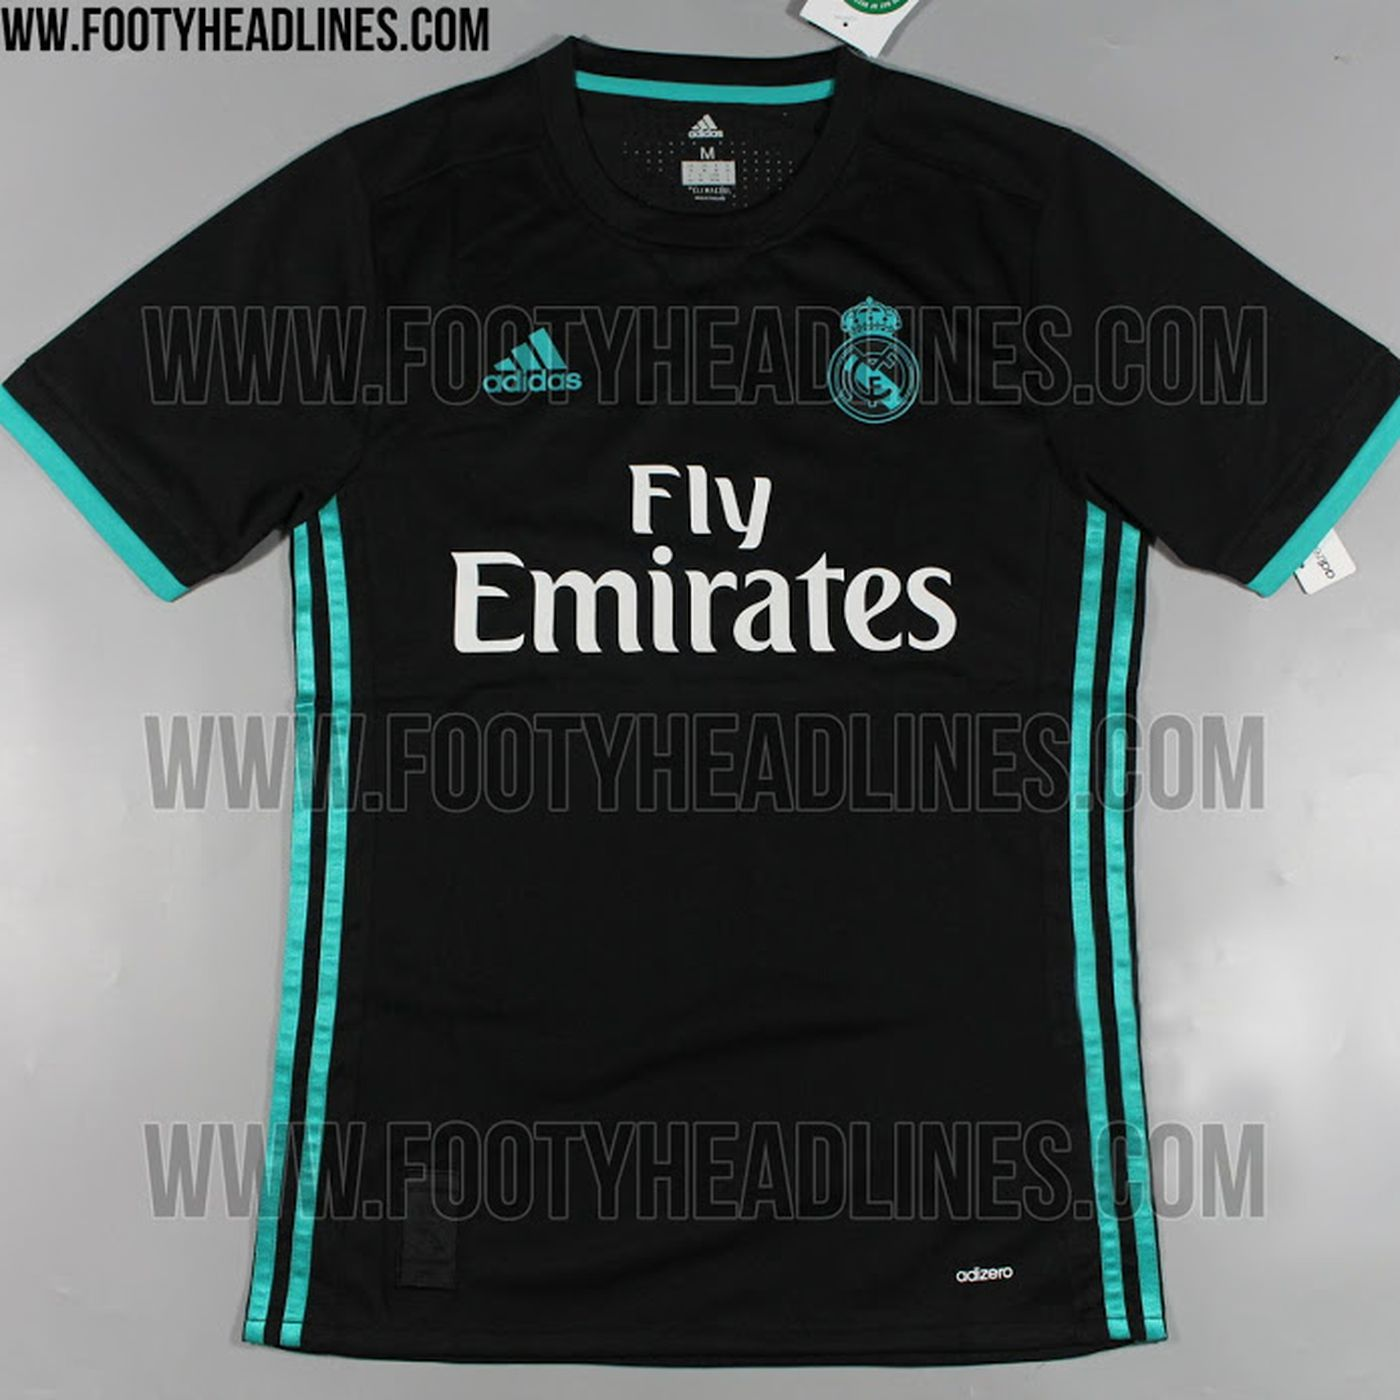 0247ac1aa Real Madrid s 2017-18 Away Kit Leaked - Managing Madrid